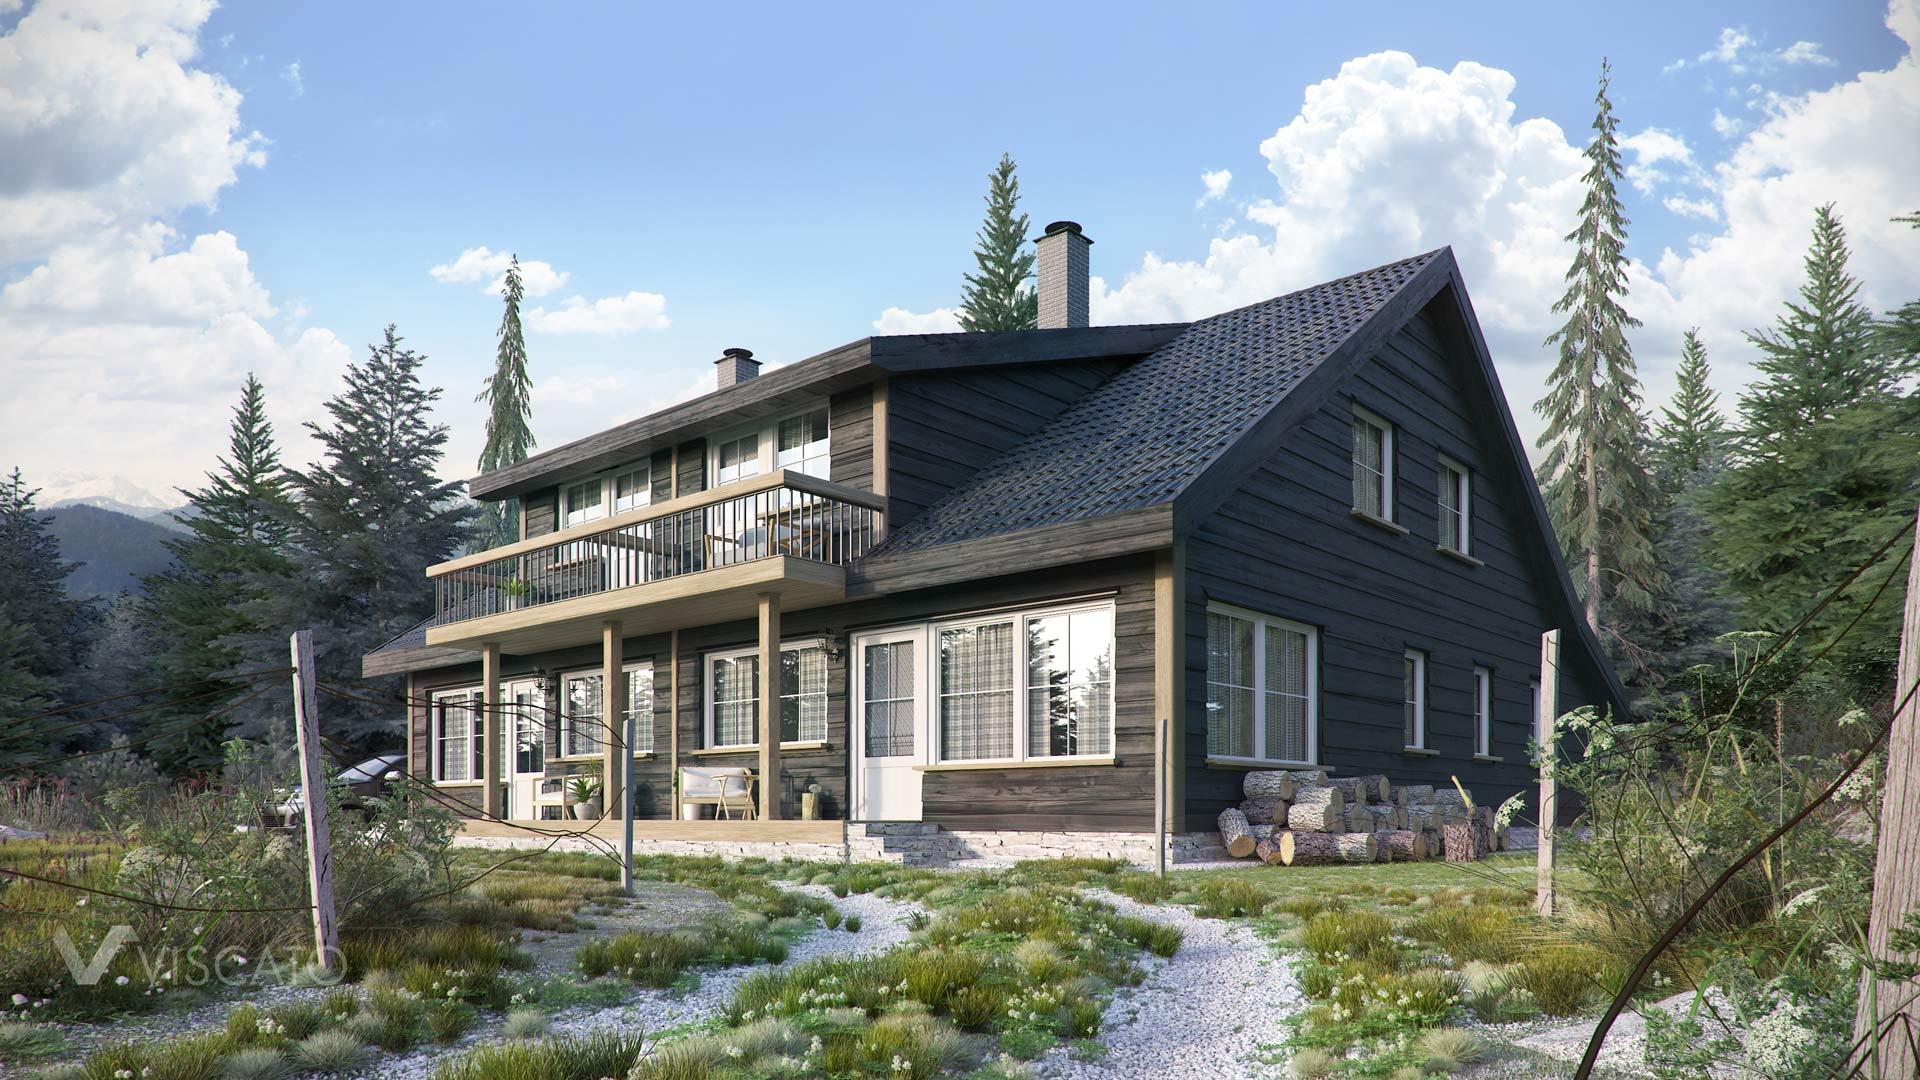 3d visualization of a lodge- Norway, detailed view